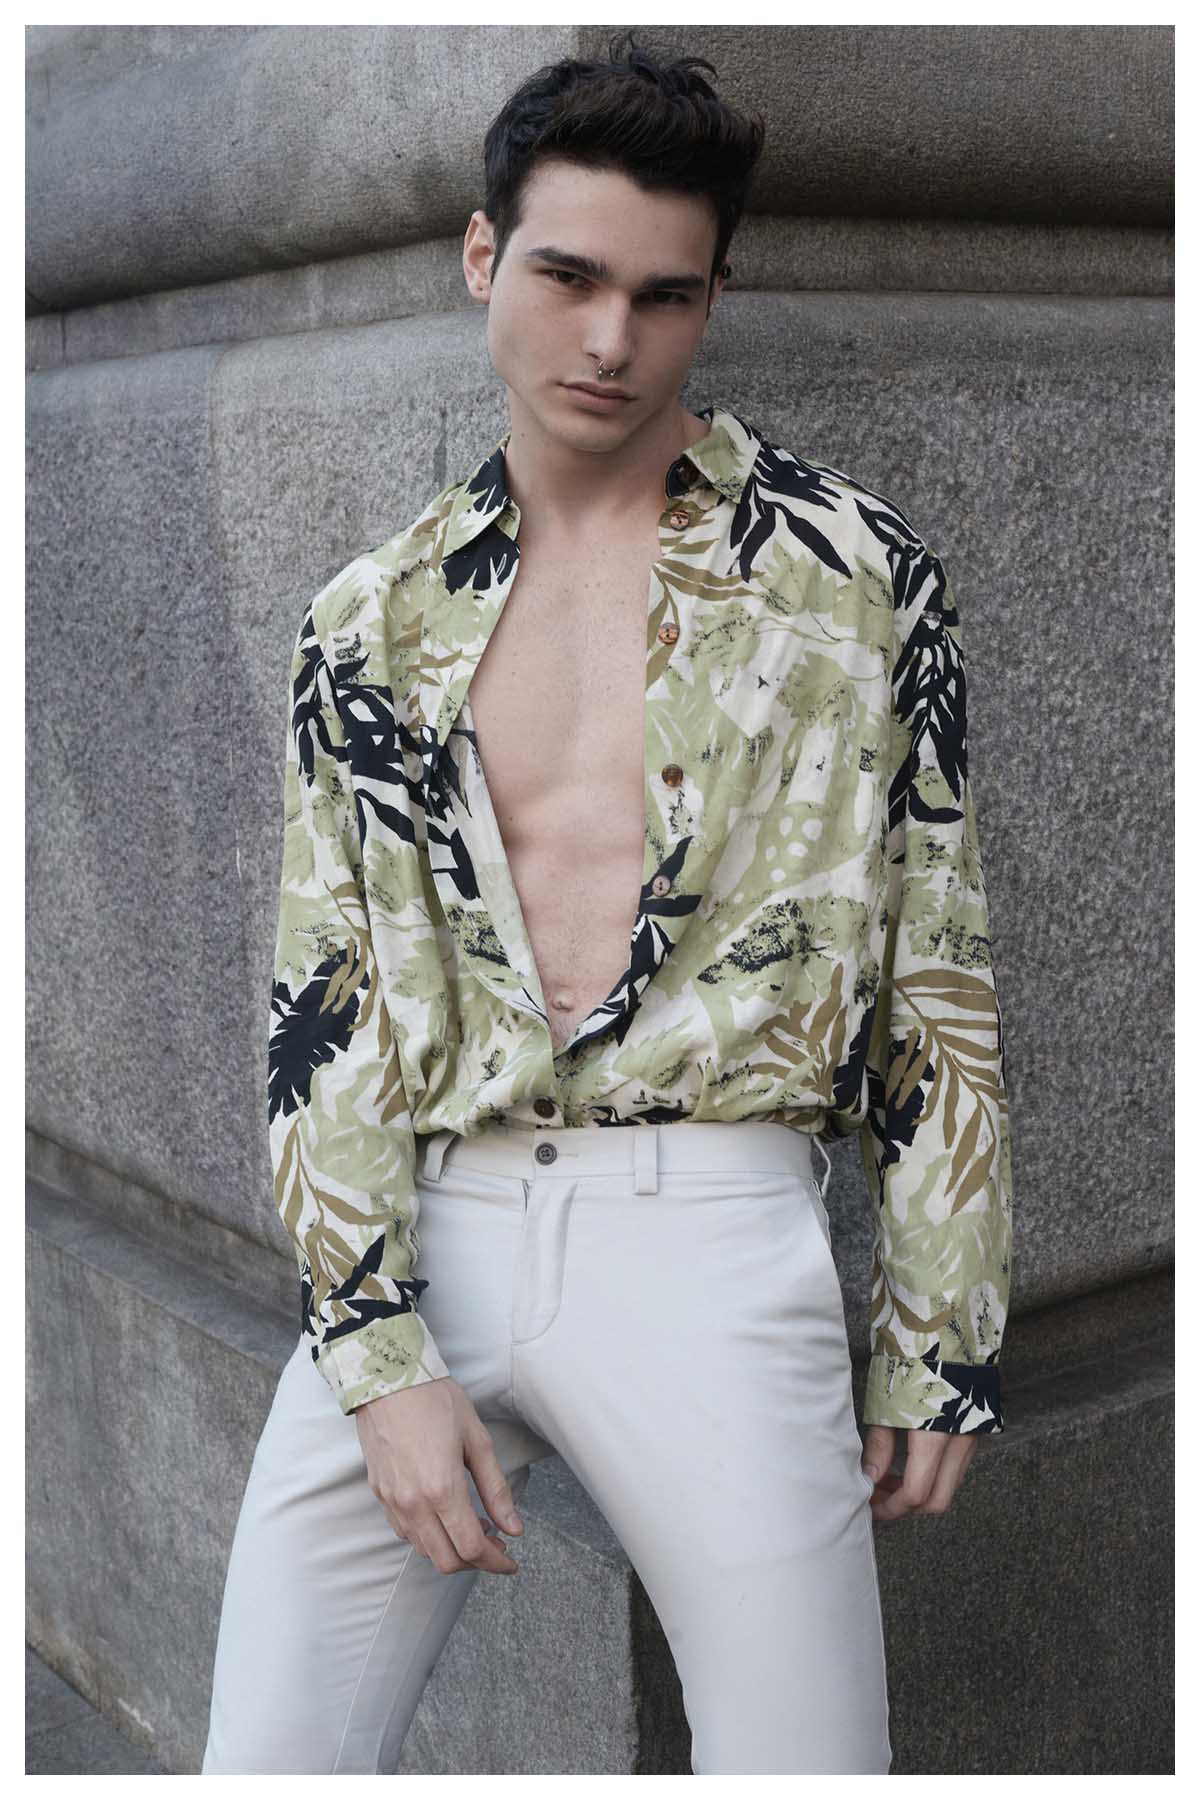 Lucas Feijó by Rodrigo Marconatto for Brazilian Male Model